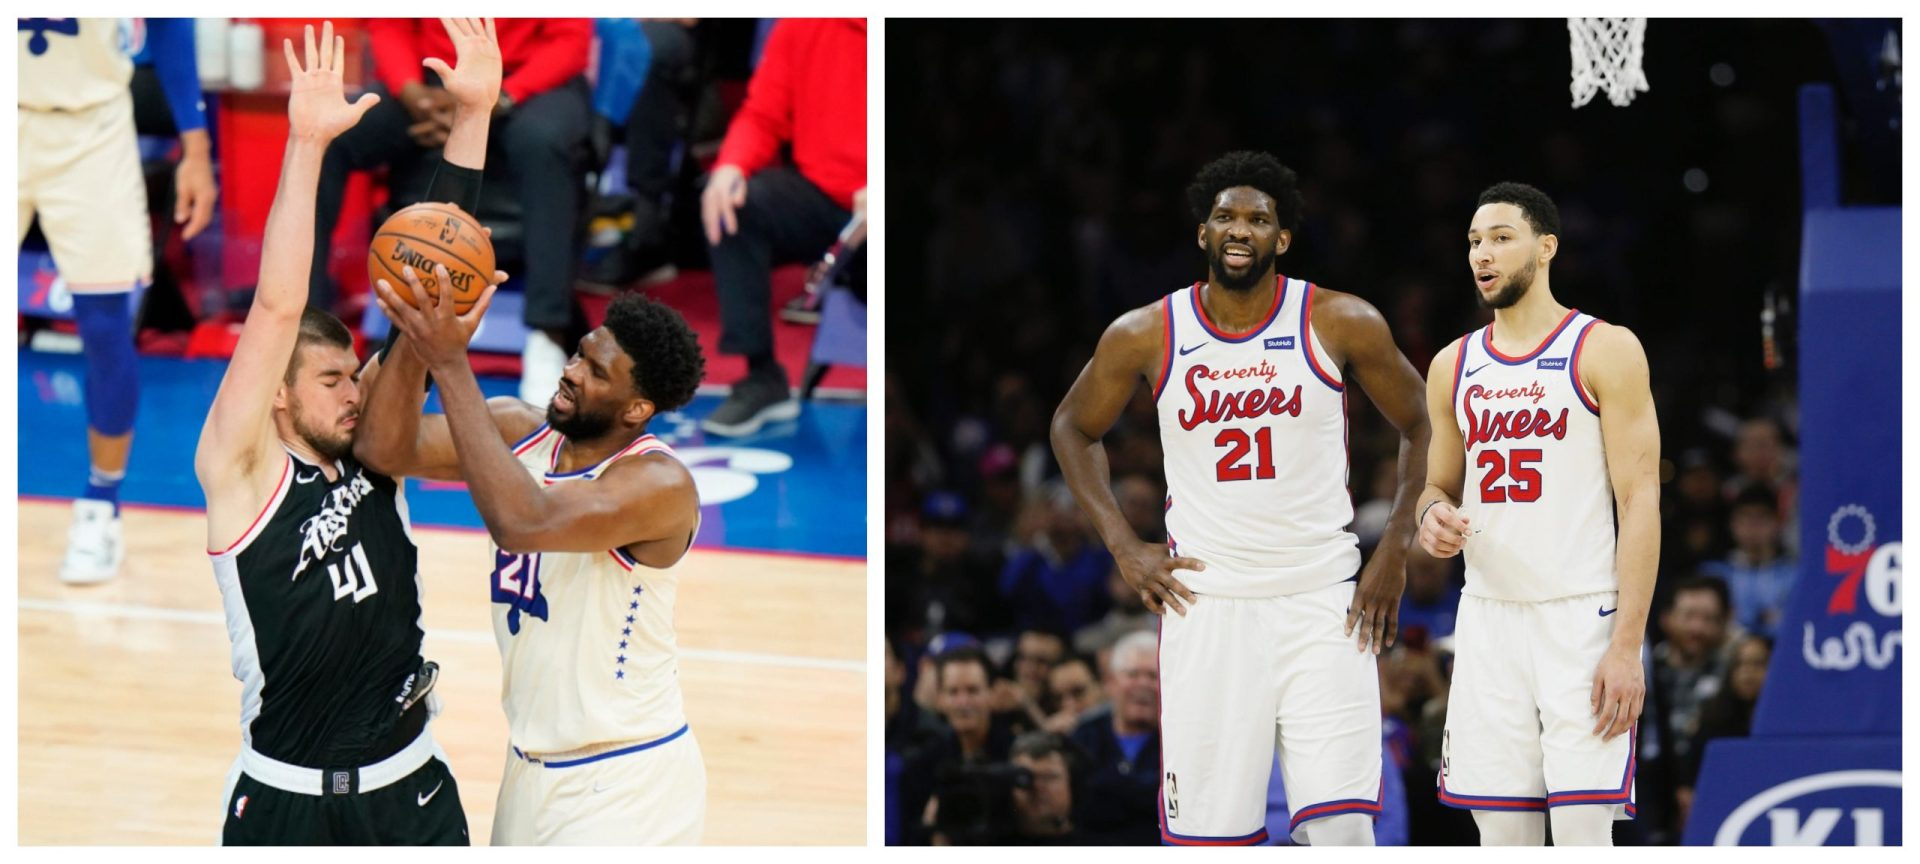 Ben Simmons vouches for teammate Joel Embiid as the MVP - THE SPORTS ROOM